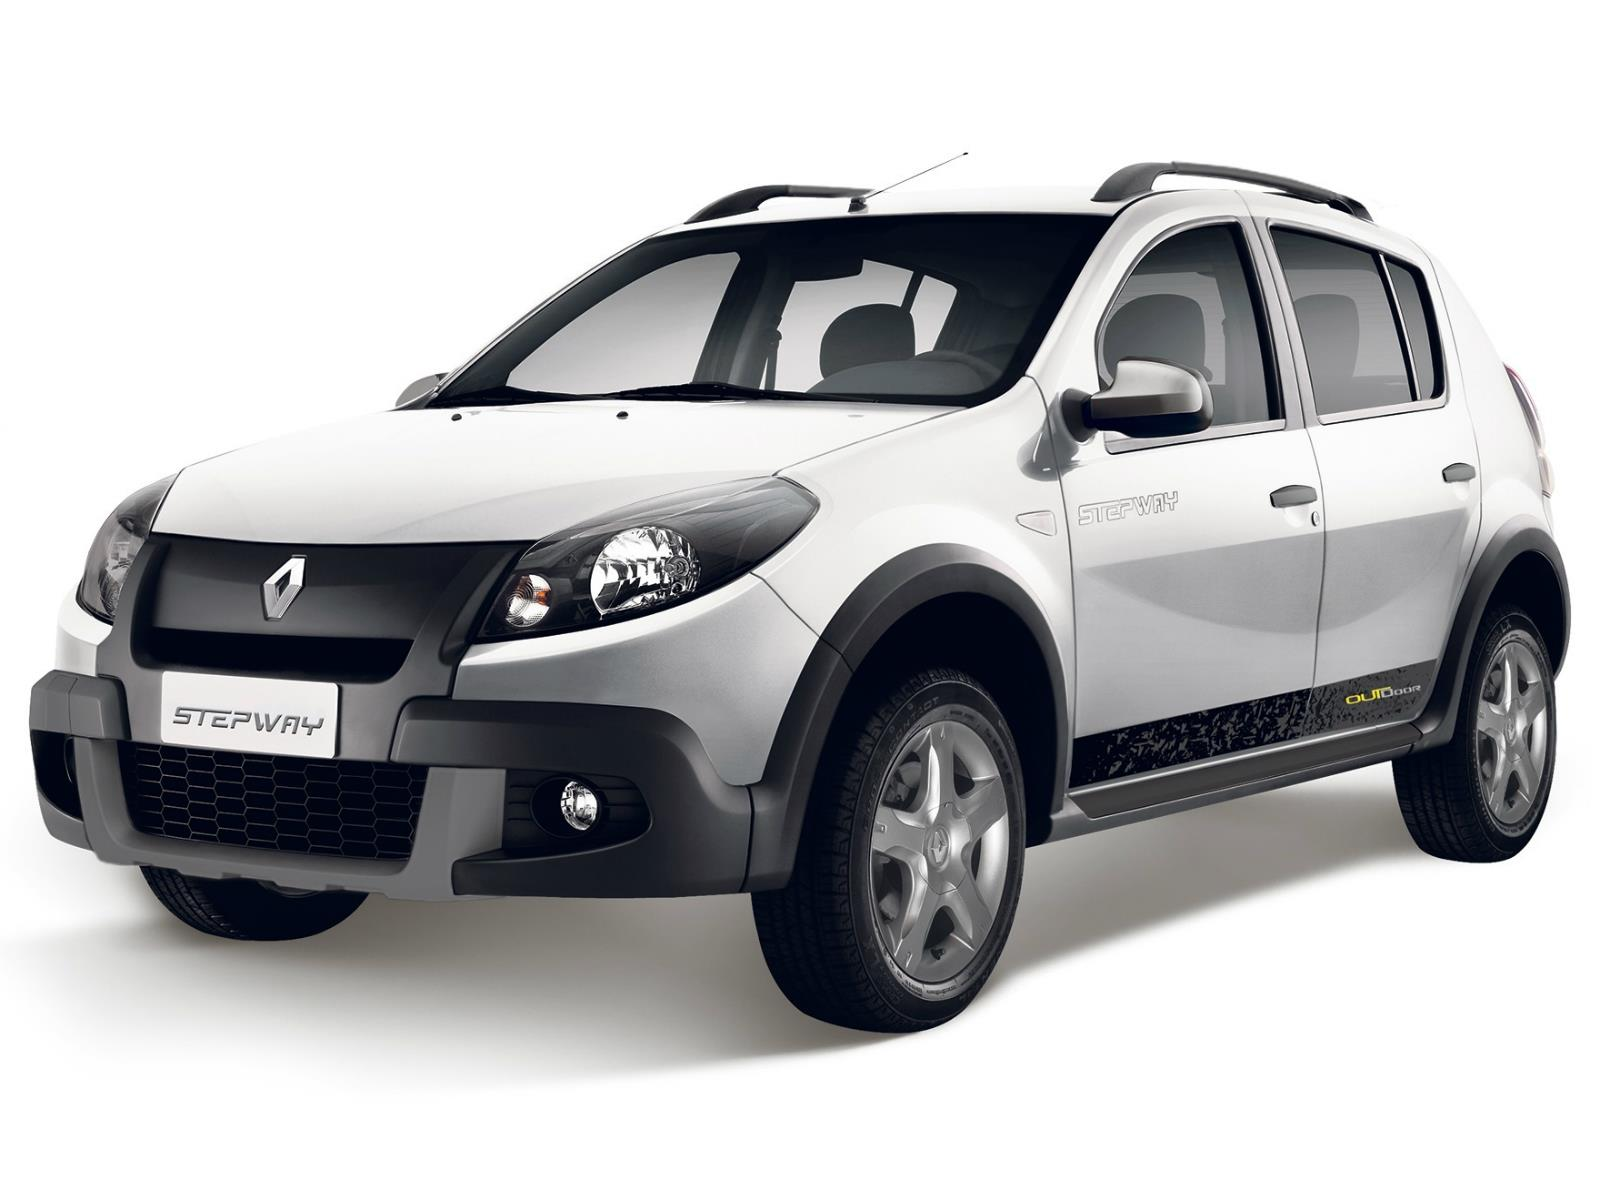 renault stepway outdoor 2015 llega a m xico en 216 600 pesos. Black Bedroom Furniture Sets. Home Design Ideas